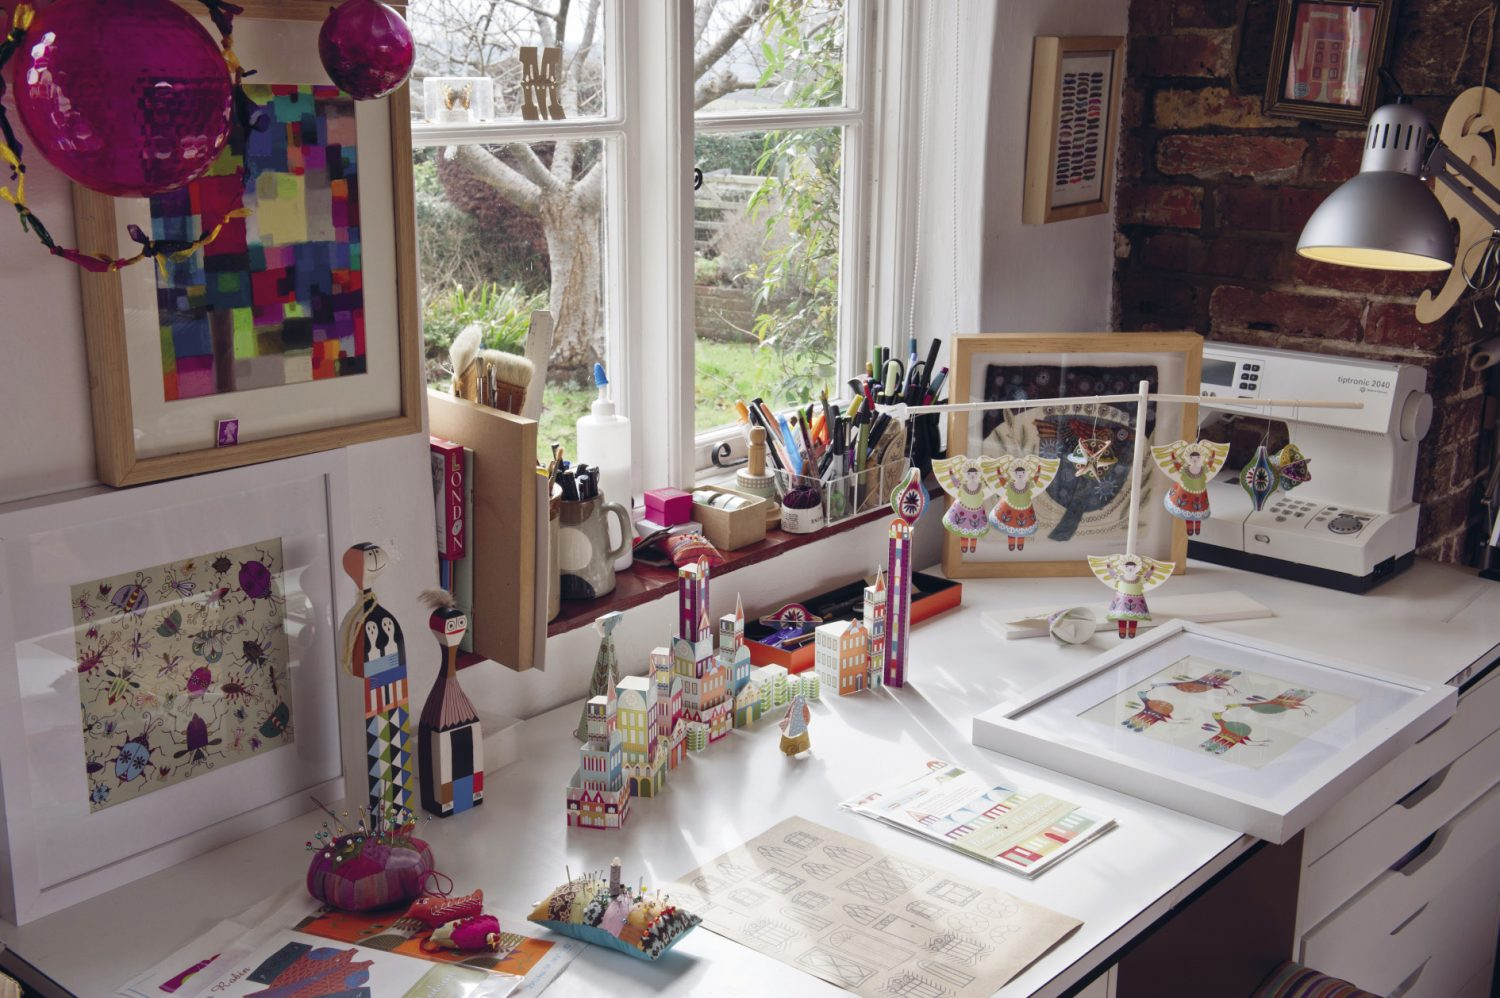 Nancy's 'Little City' paper kit buildings are grouped together on her desk as if on a tiny street